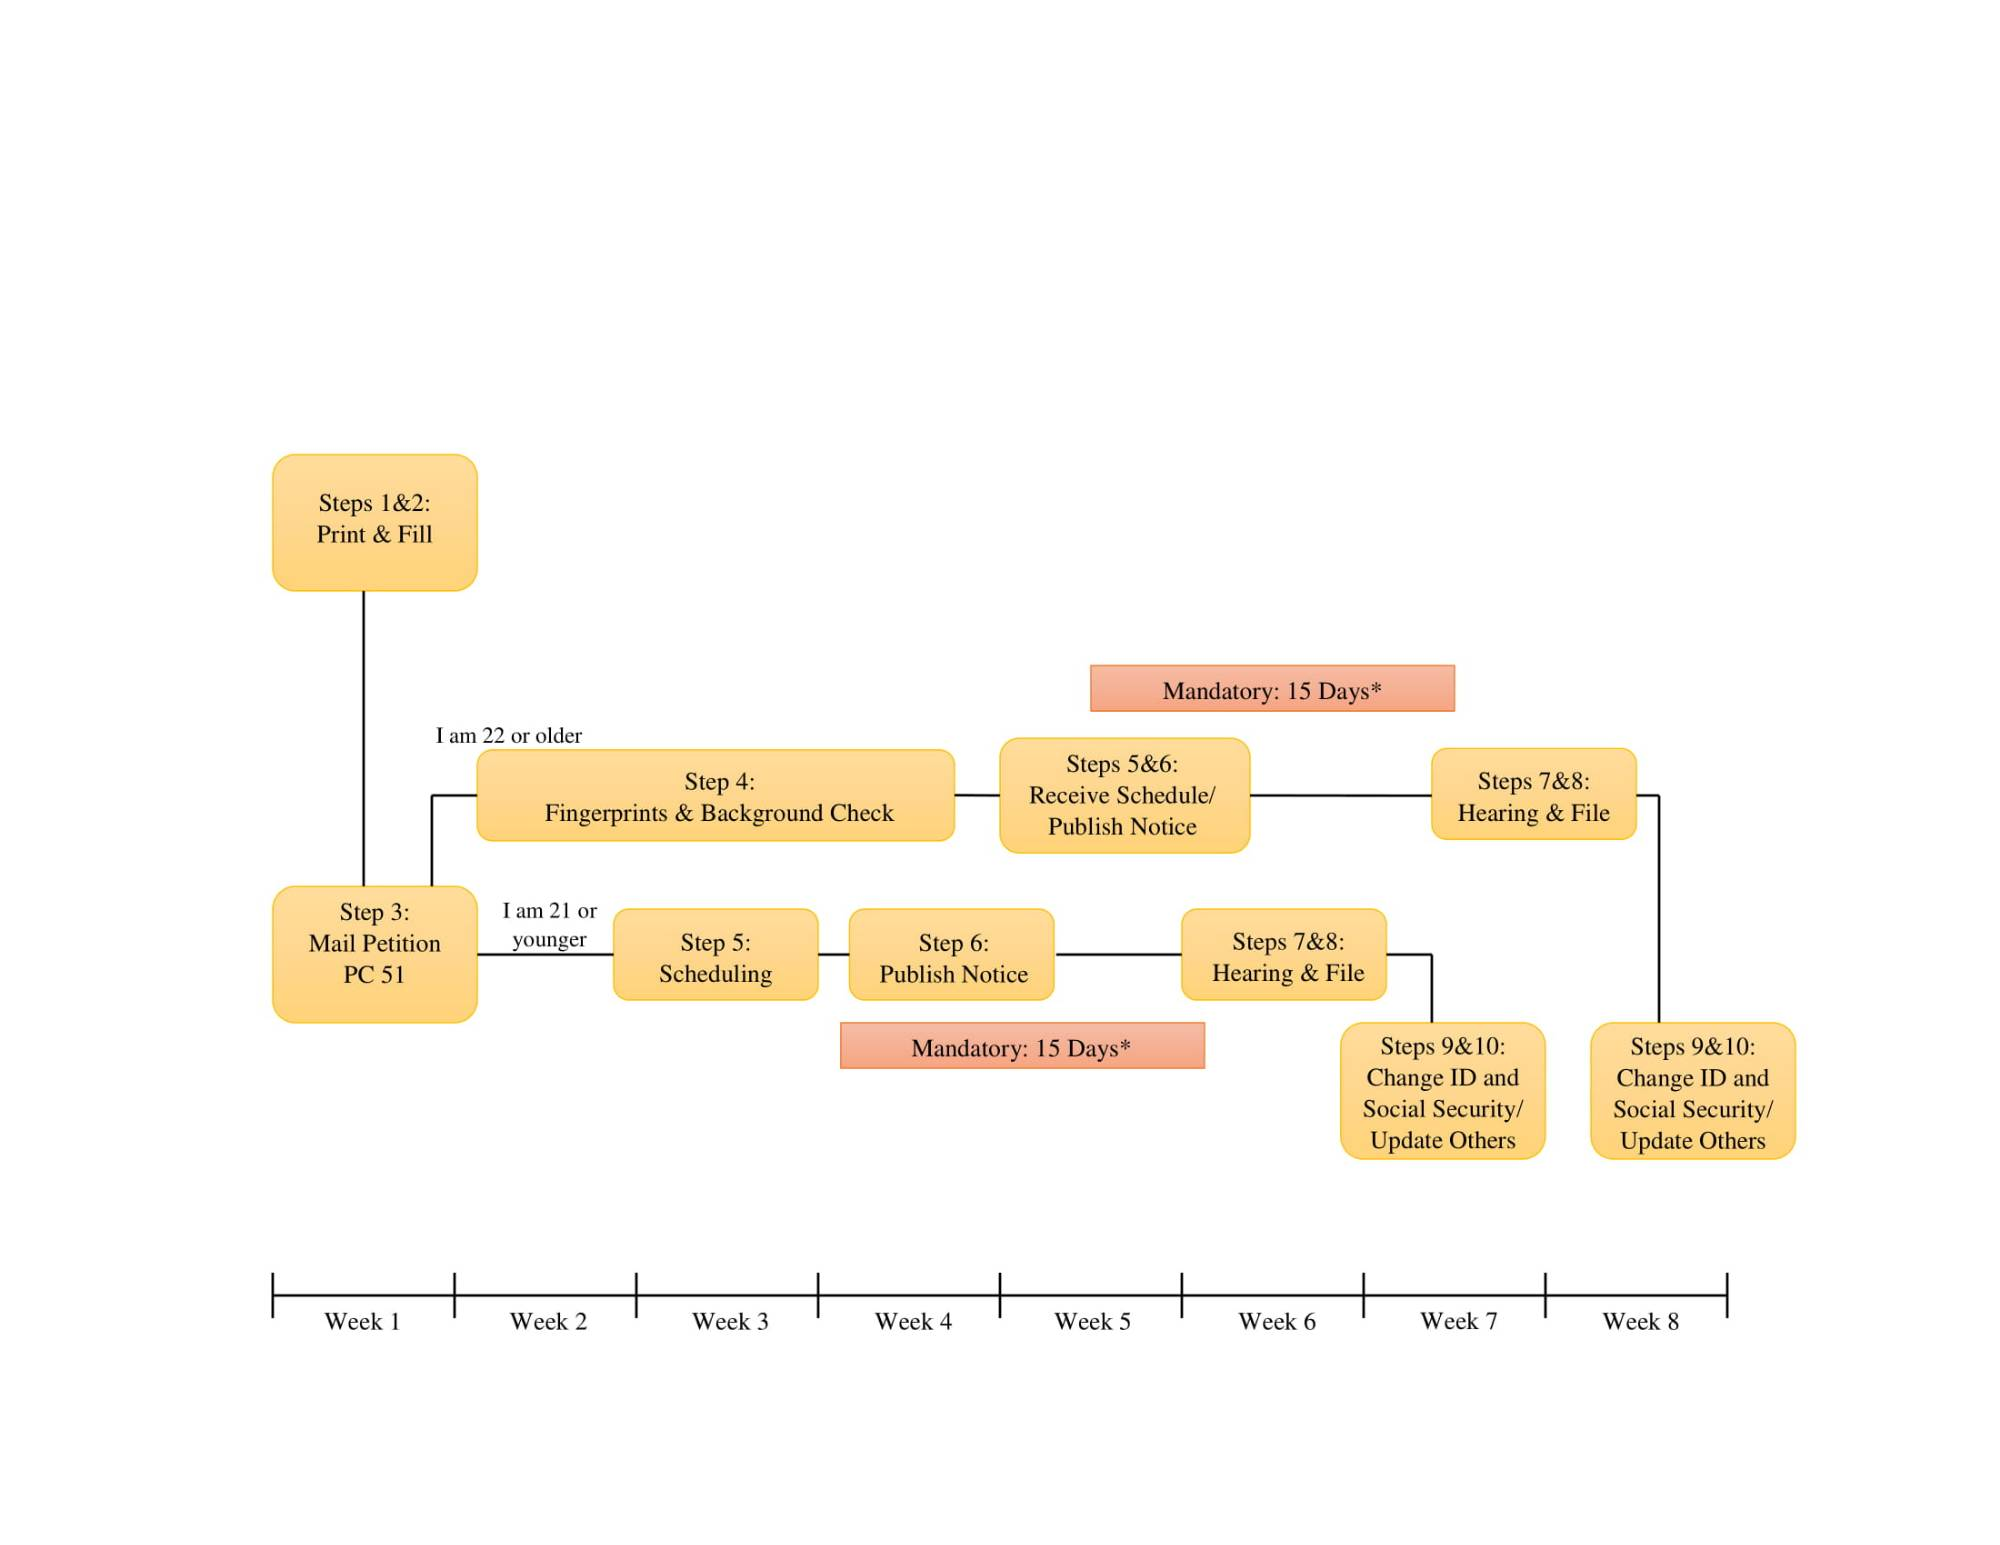 General Timeline for Legal Name Change in Michigan